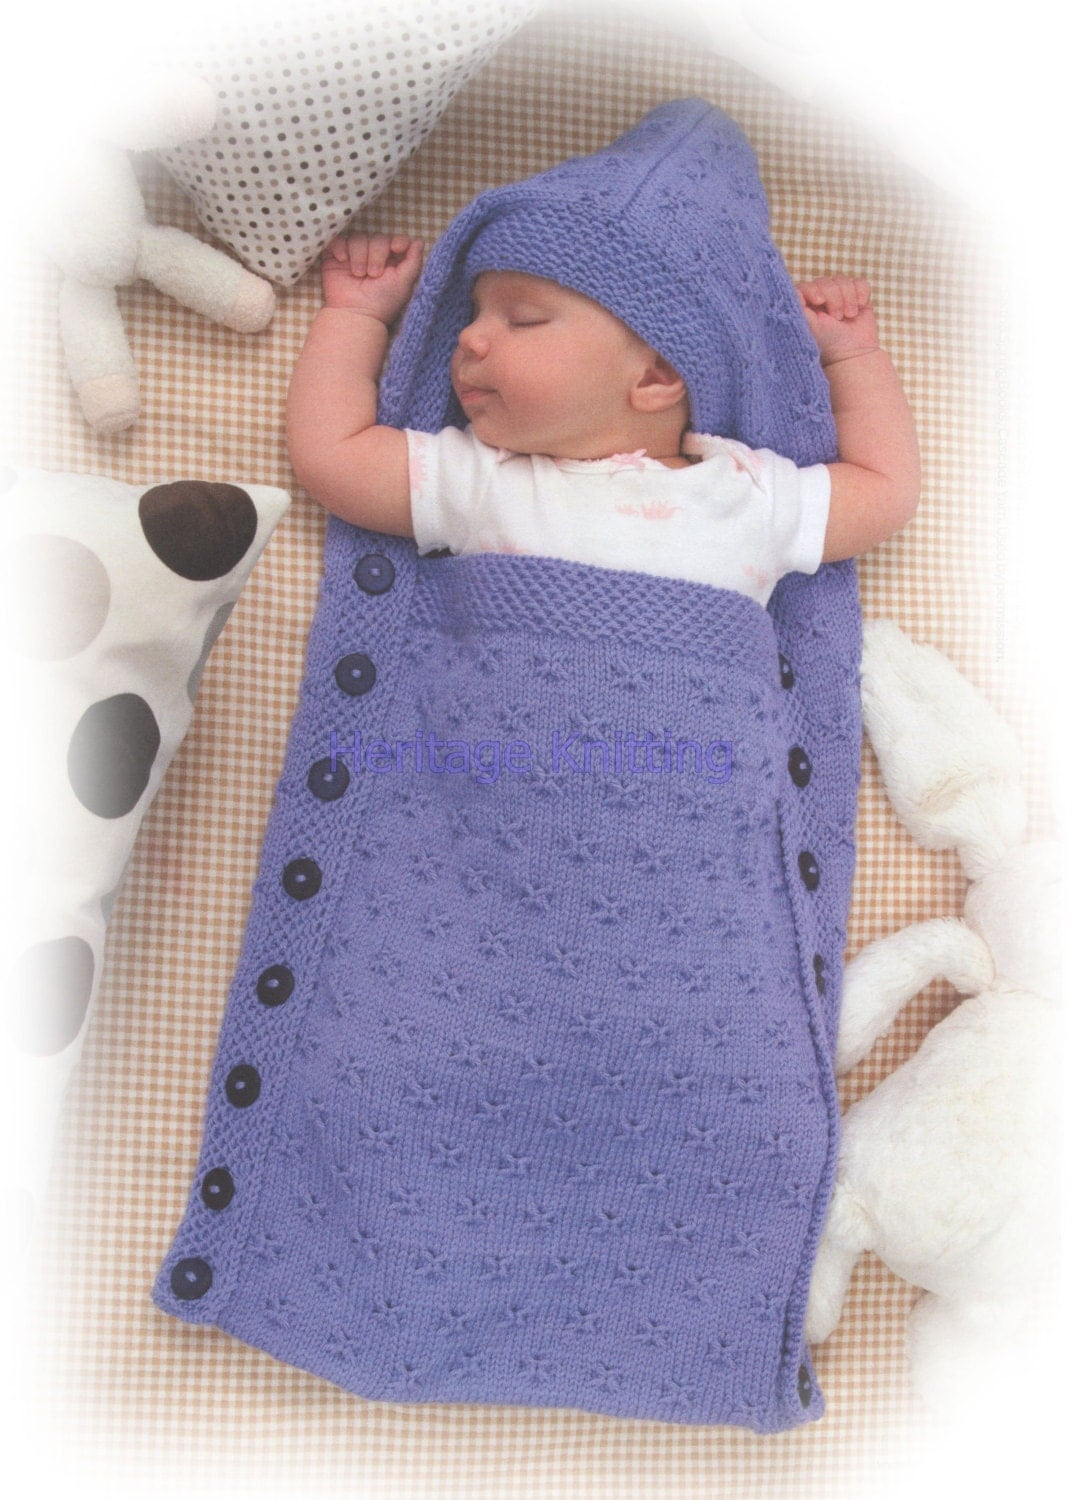 baby sleeping bag knitting pattern 99p. Black Bedroom Furniture Sets. Home Design Ideas